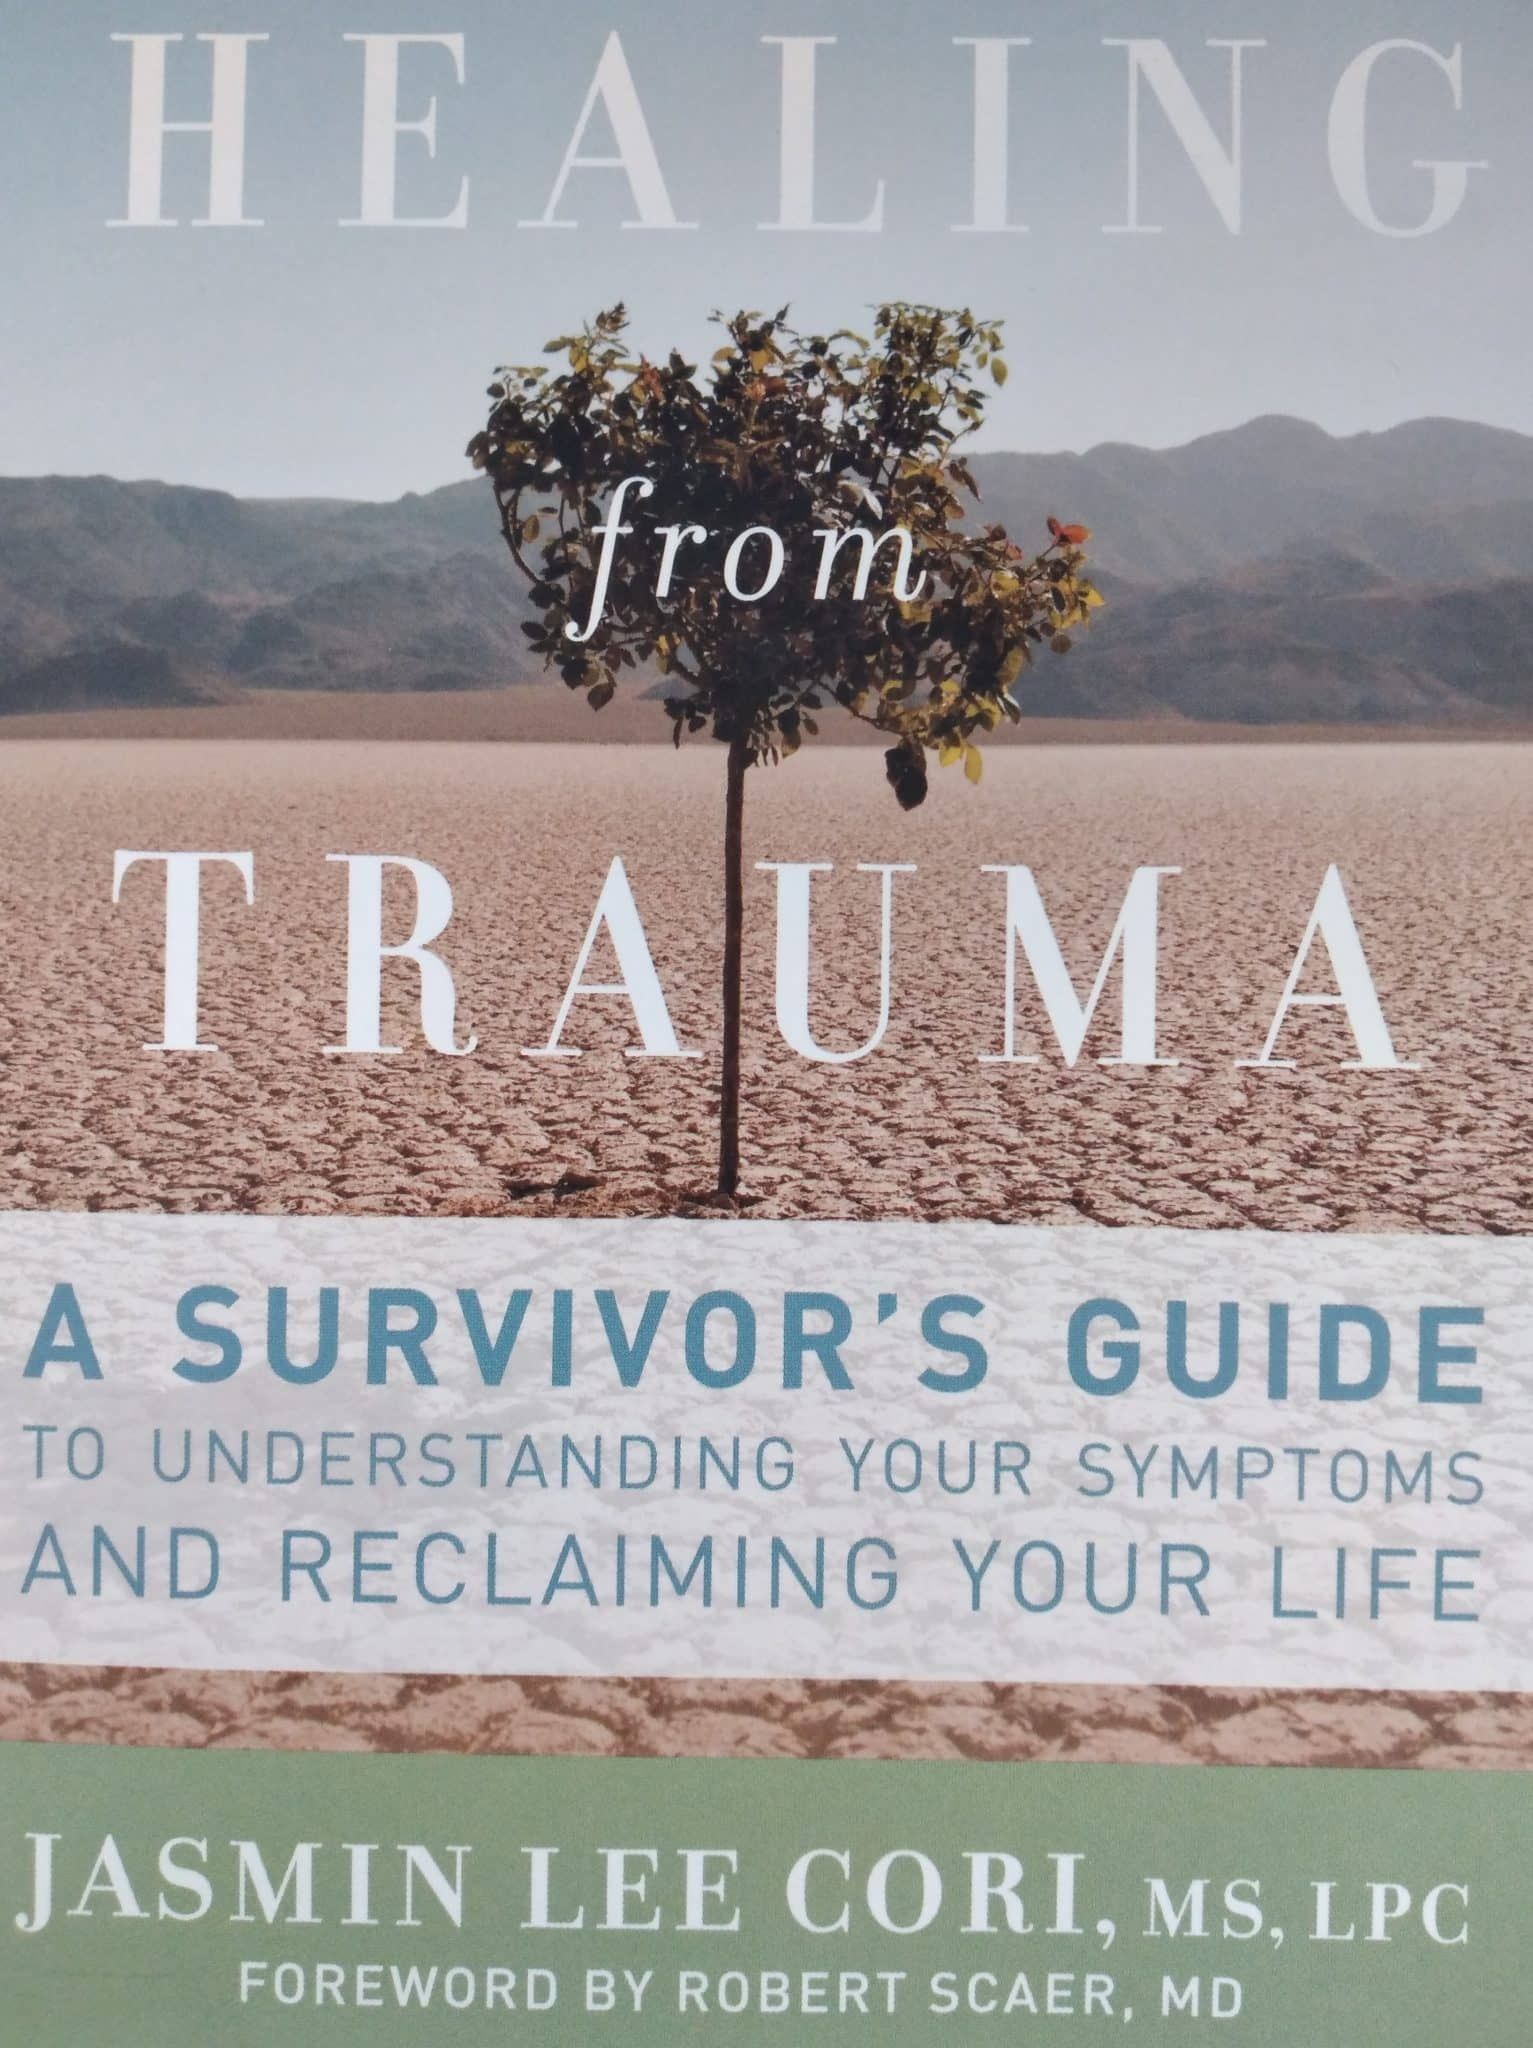 Healing From Trauma. A Survivor's Guide To Under Standing Your Symptoms And Reclaiming Your Life